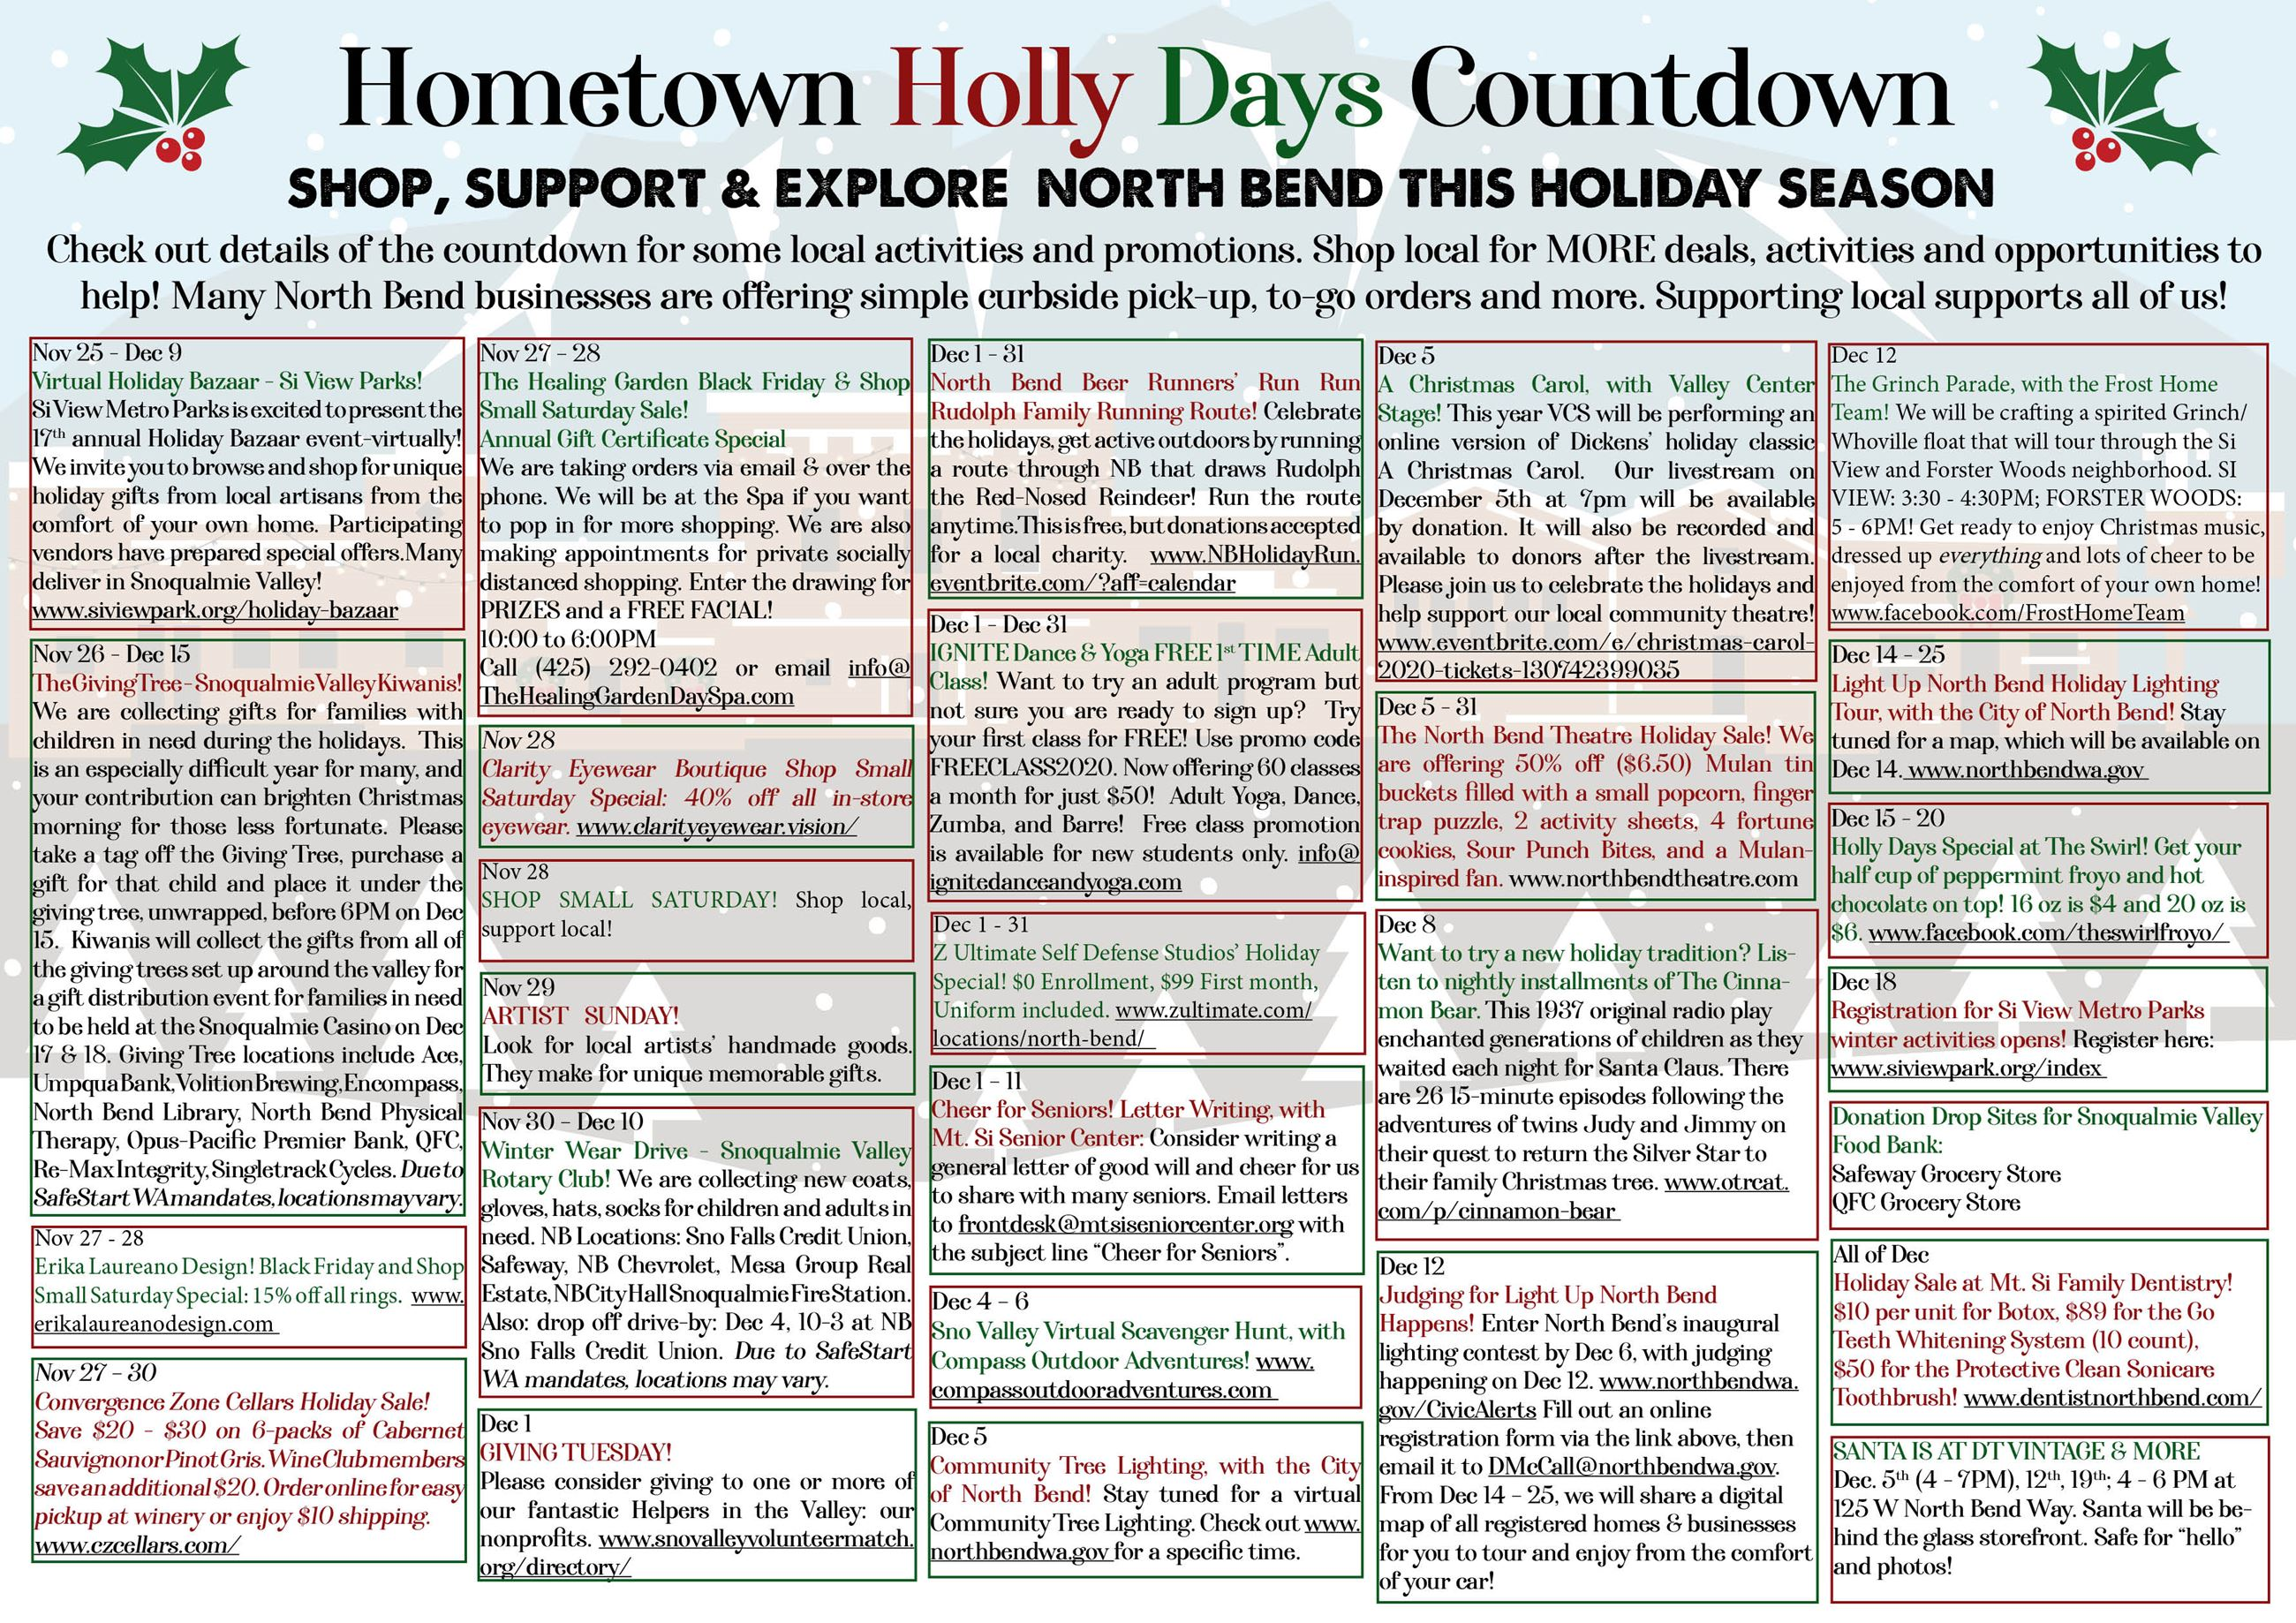 Holly Days Hometown Holiday Countdown Calendar2